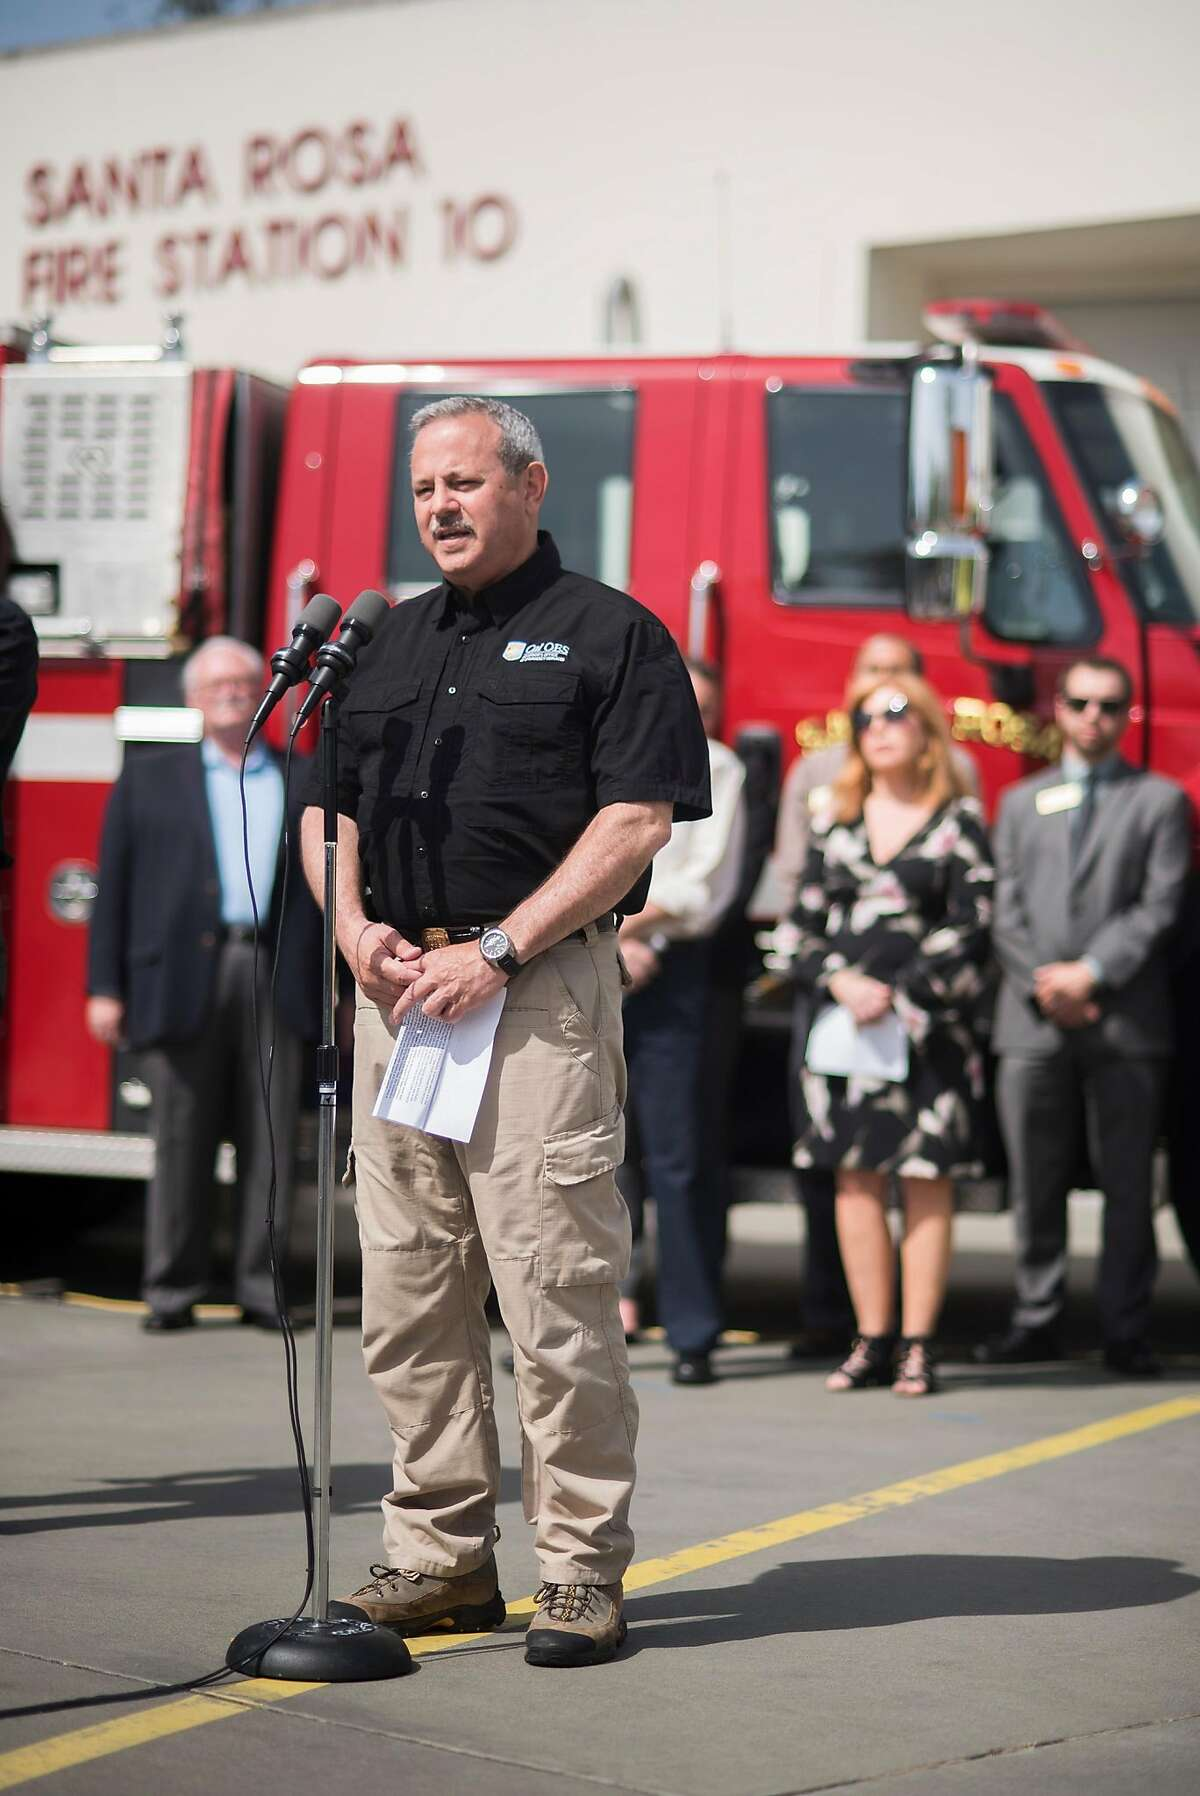 Nearly six months after one of the largest debris removal operations in state history began, state, local and federal partner agencies have finished clean-up from the destructive Northern California wildfires of 2017. Representatives from various agencies addressed the media at a press conference on May 10, 2018 in Santa Rosa, CA. Cal OES Director, Mark Ghilarducci address the media at the press conference.